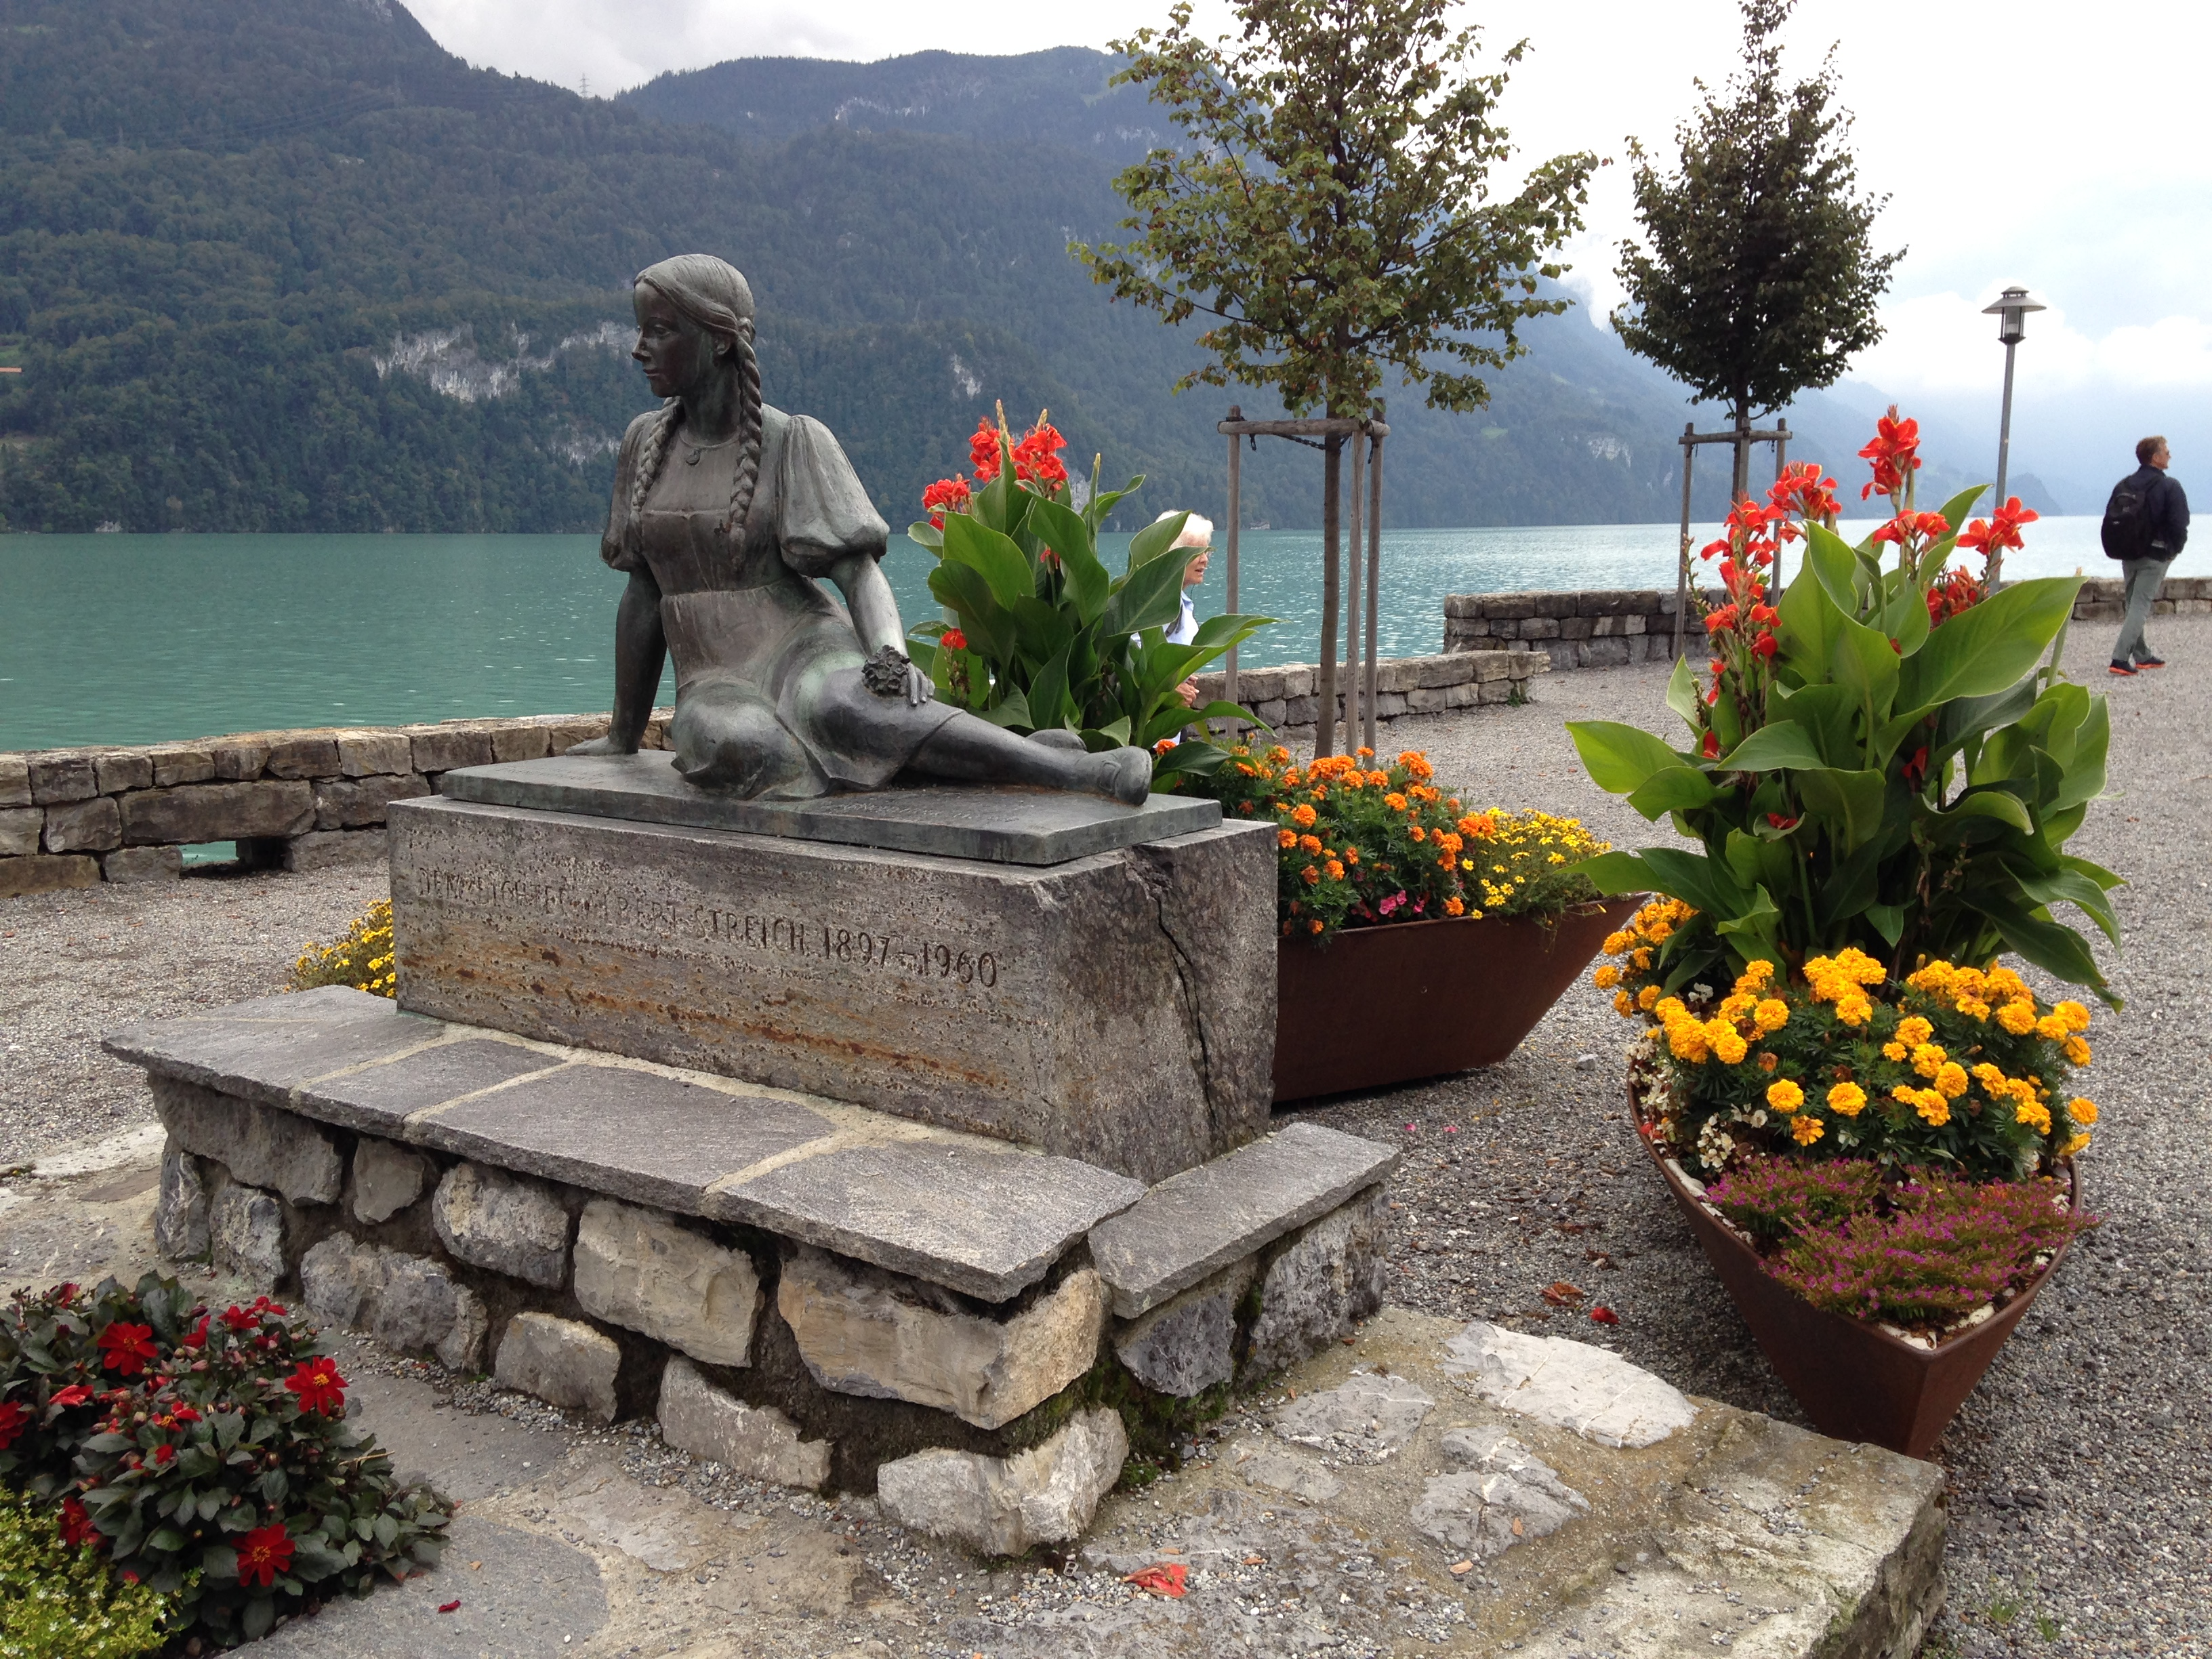 Statue on the shore of a Swiss lake. September 2016